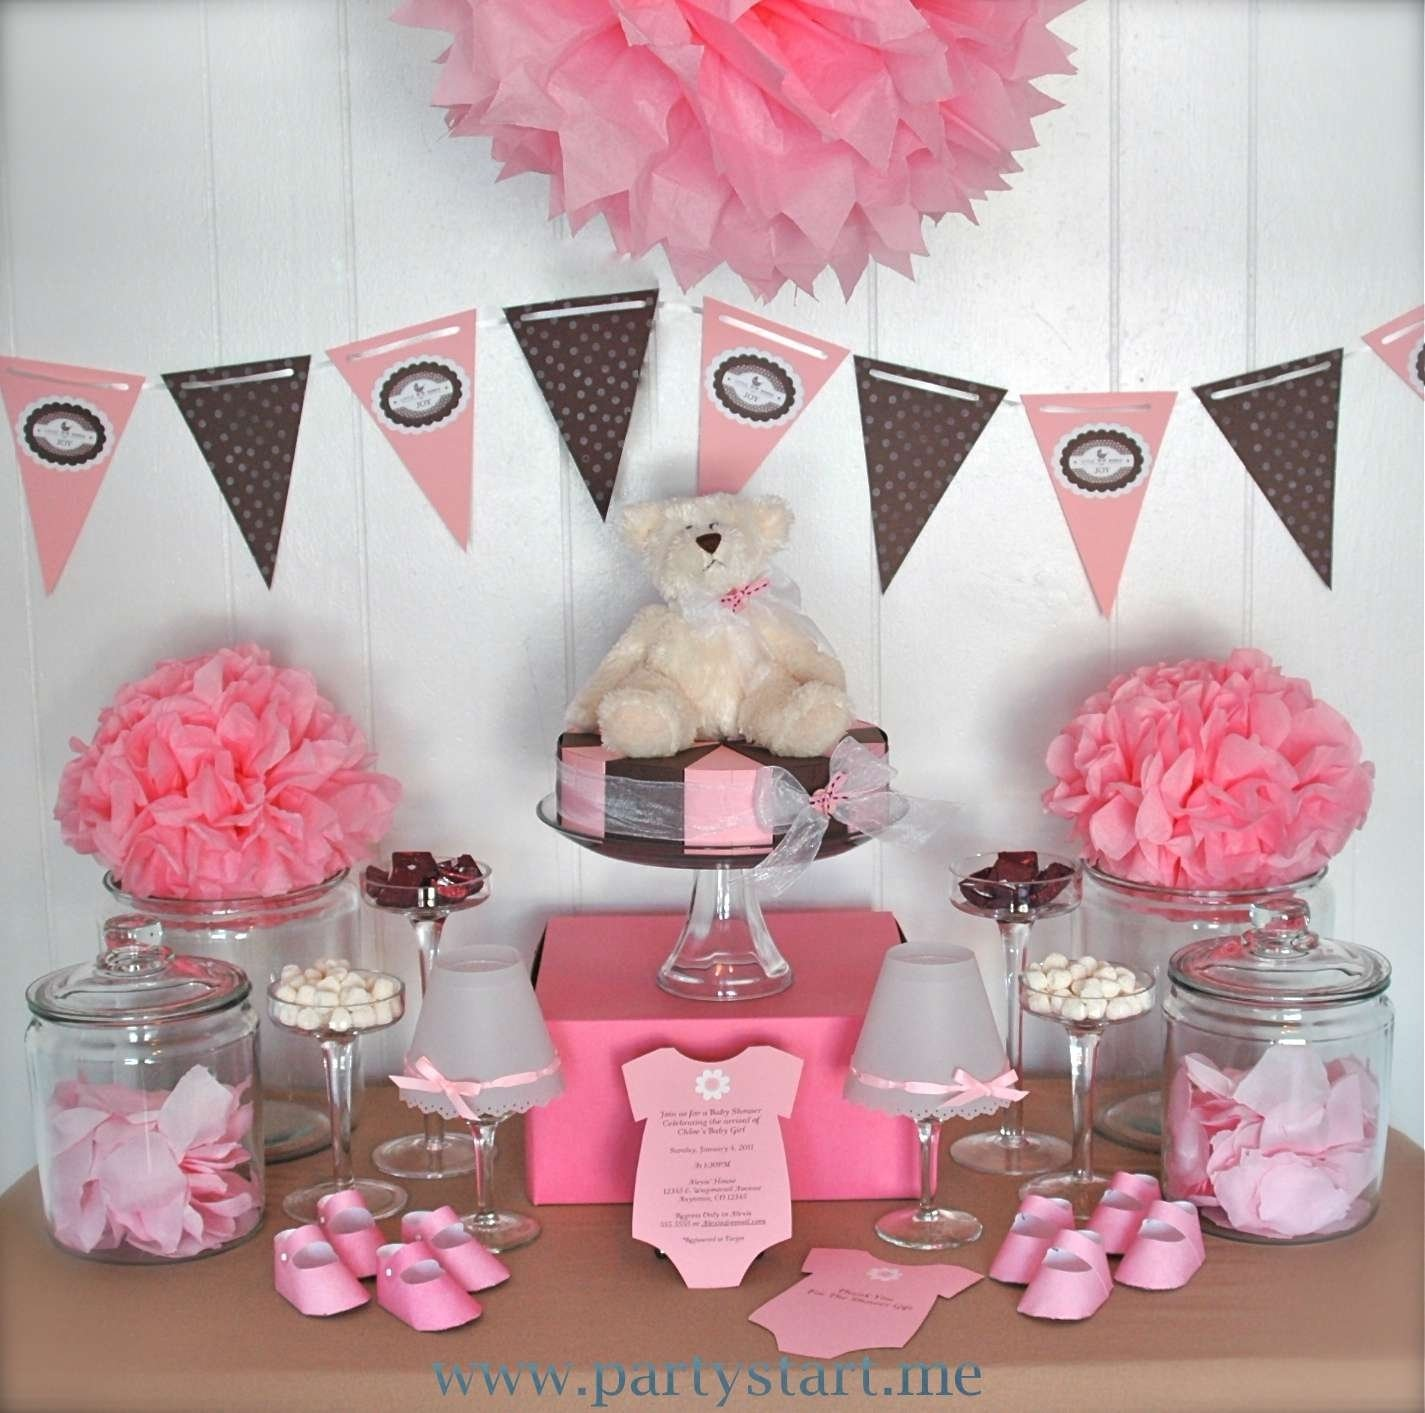 10 Fantastic Baby Girl Shower Decoration Ideas baby shower food ideas monkey decorations cute clipgoo how to 2 2021